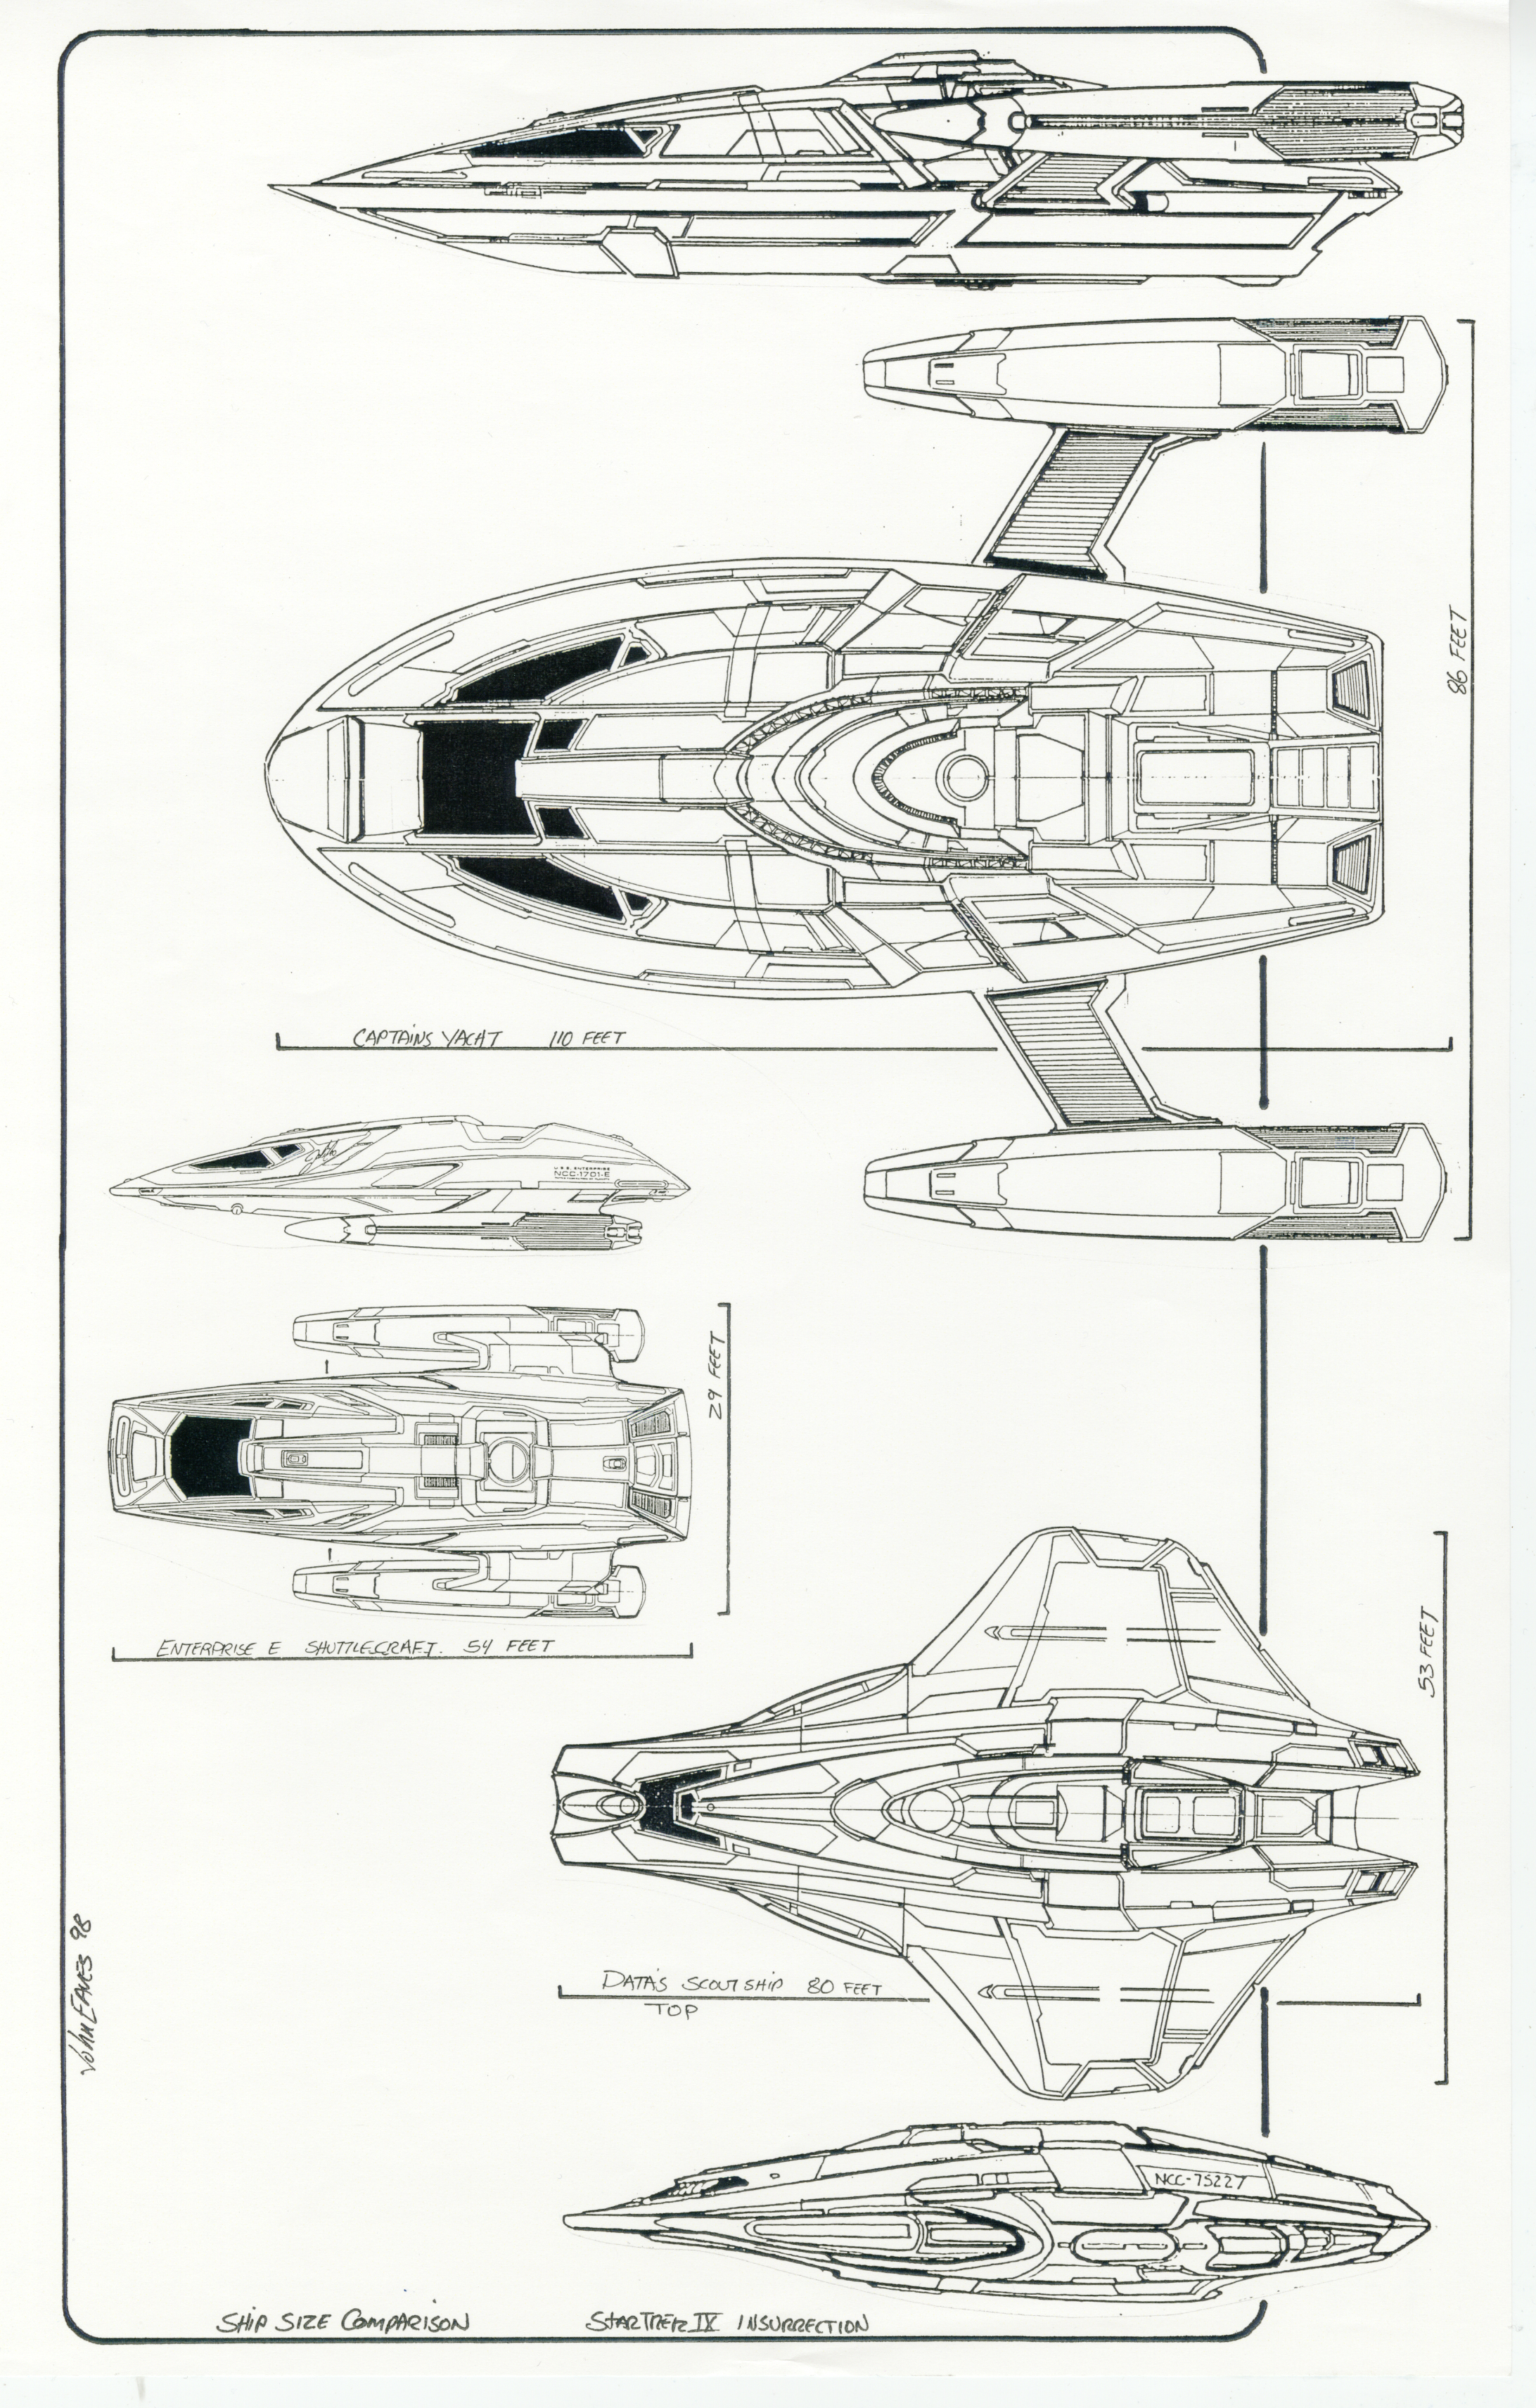 post #2 for 5-10-10, ship scales from Star trek